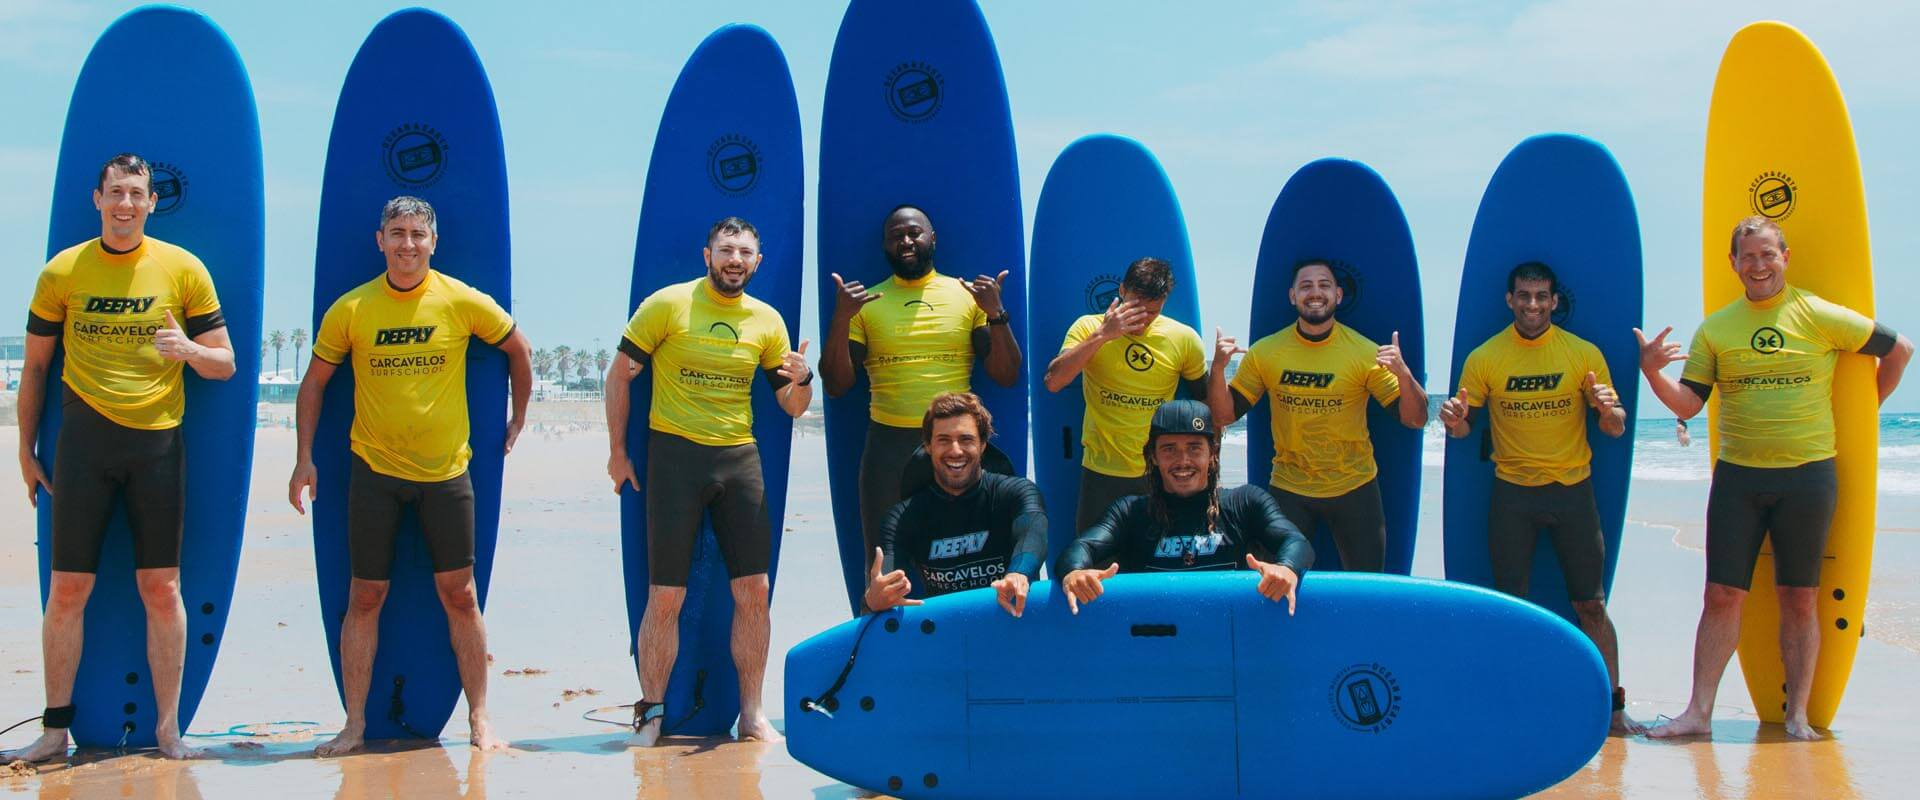 Carcavelos Surf School - our students foto 1